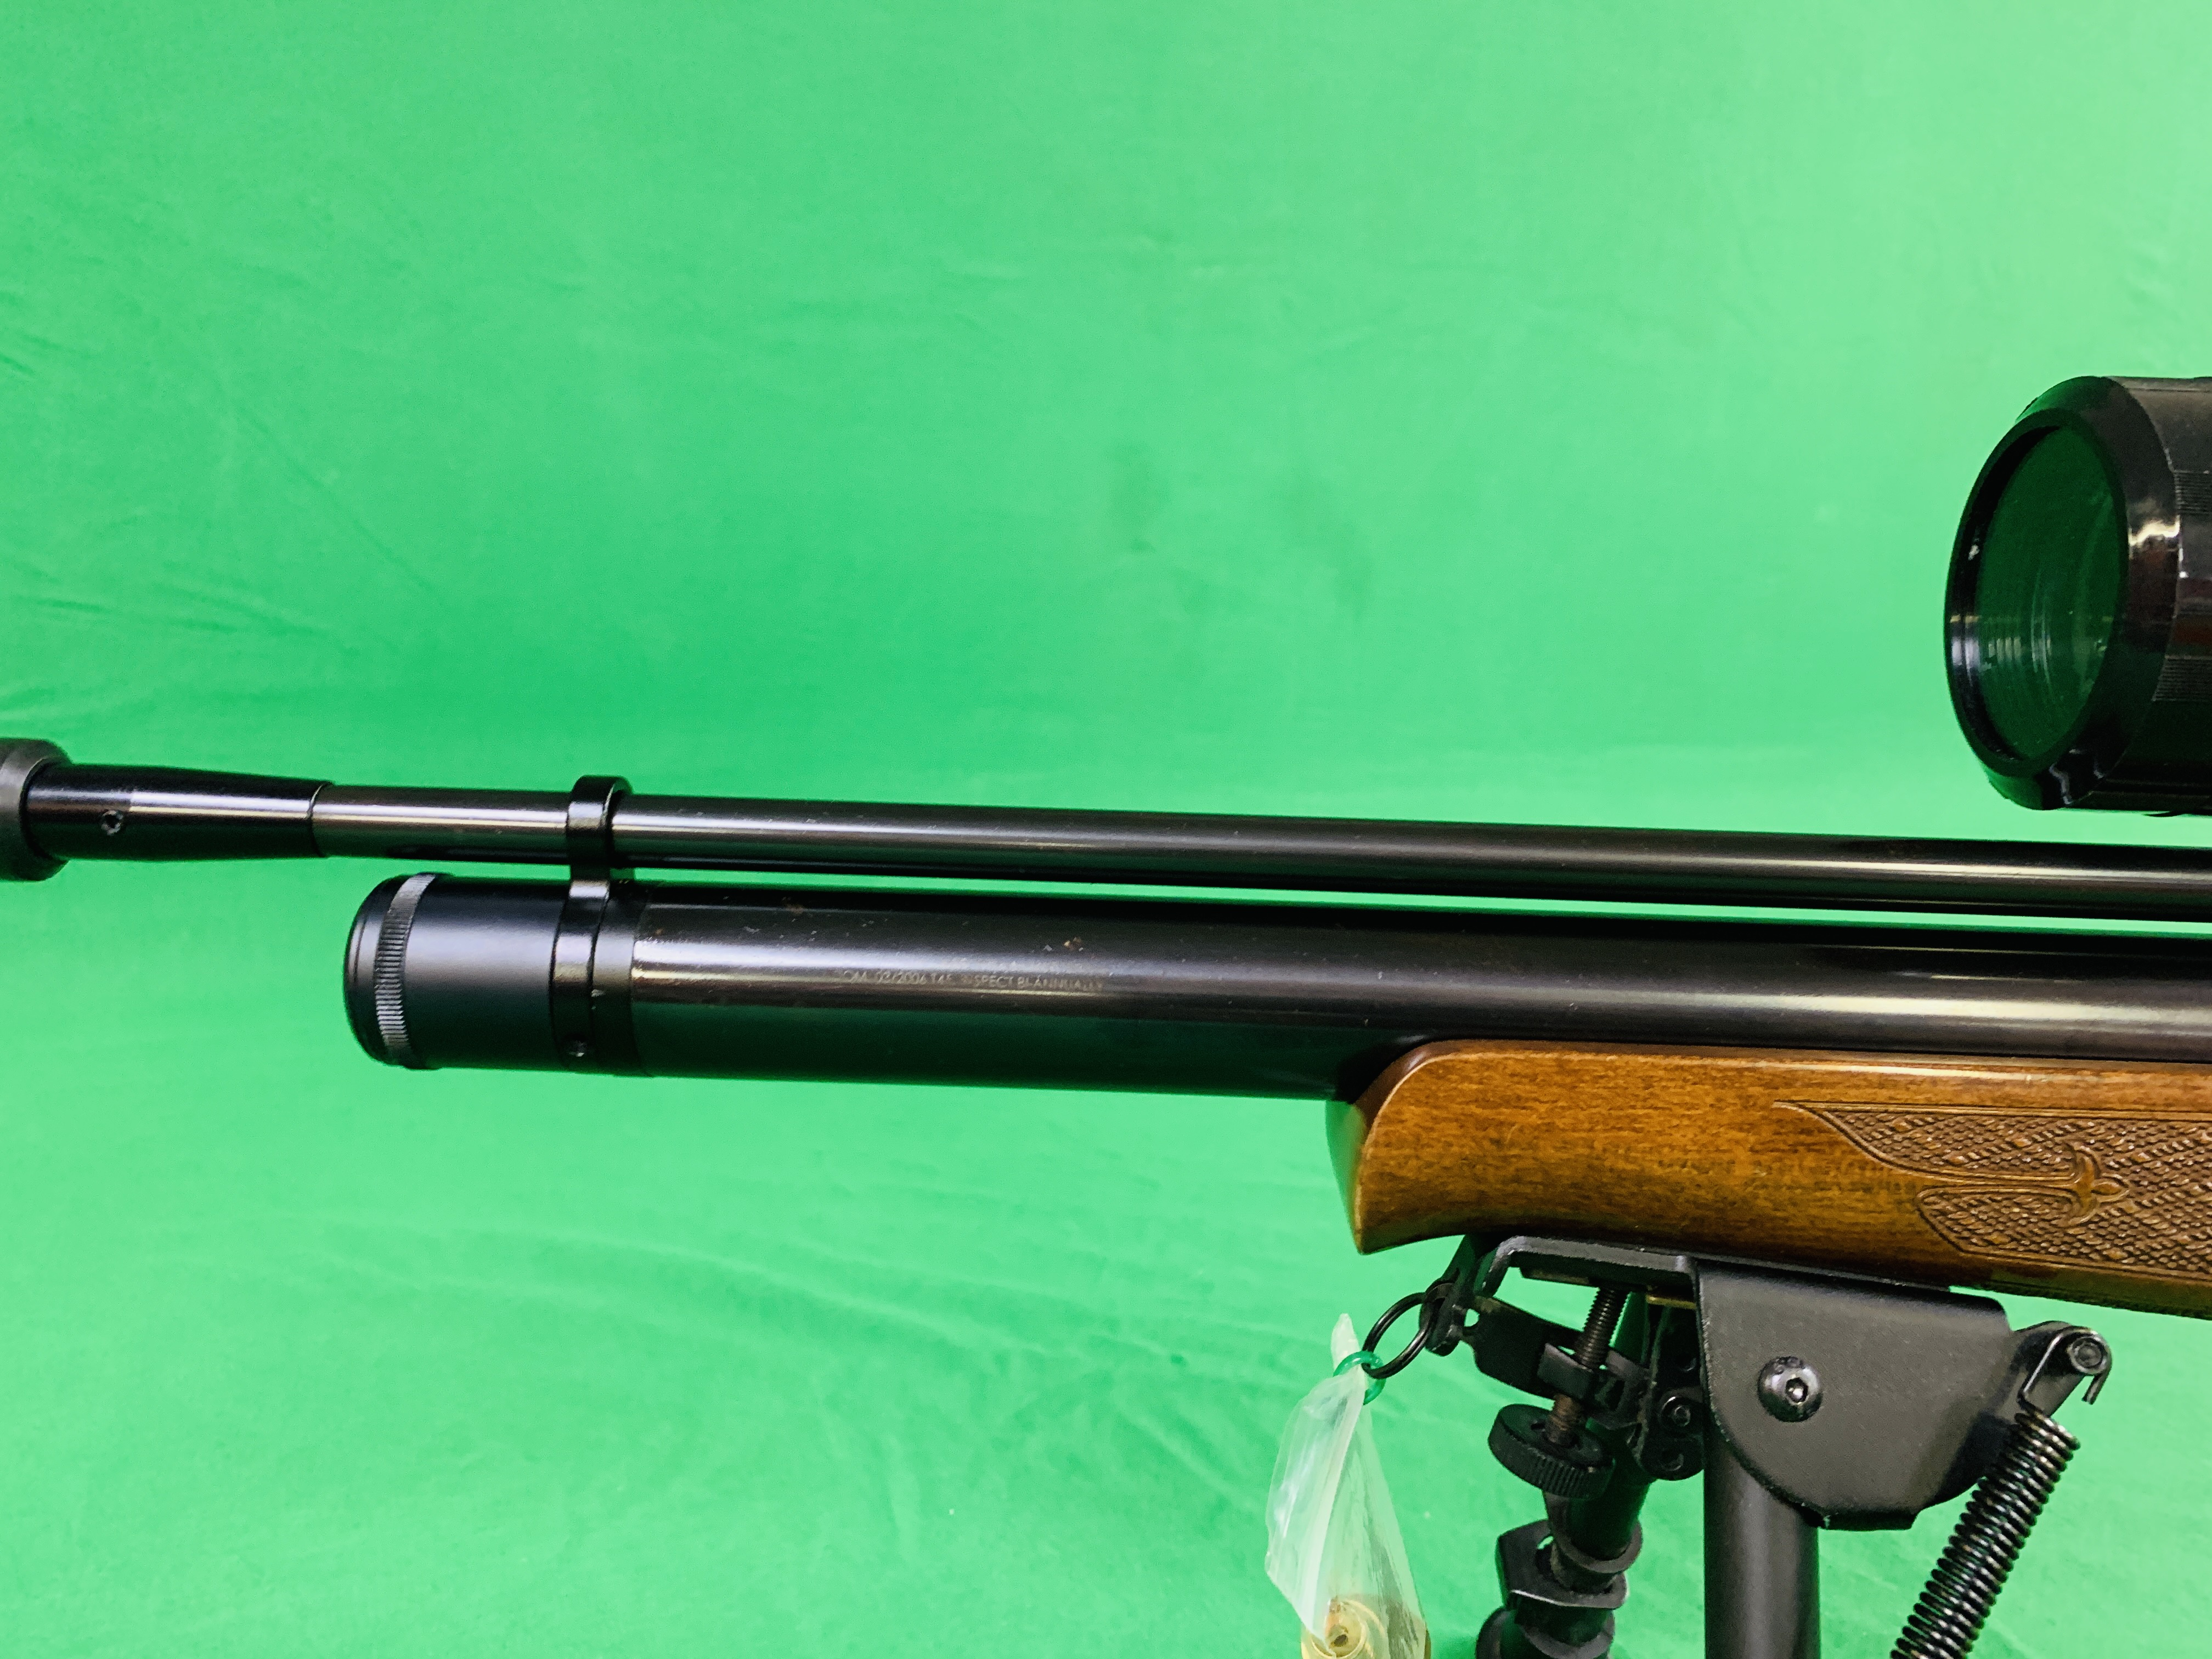 AIR ARMS S400 CLASSIC .177 BOLT ACTION PCP AIR RIFLE FITTED WITH BONUS 6. - Image 7 of 17